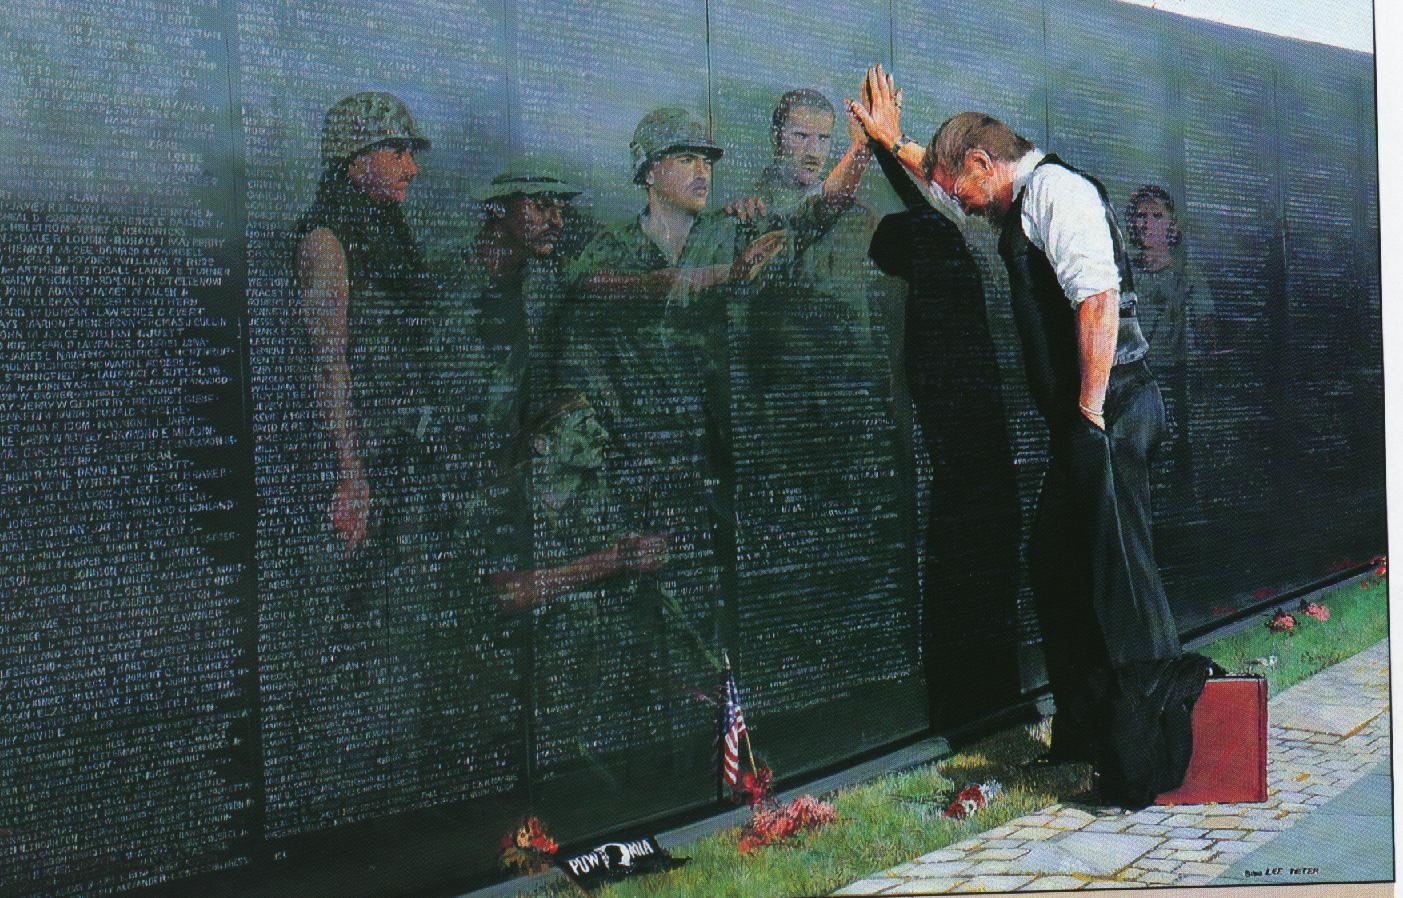 the vietnam veterans memorial wall That's when police came and moved everyone out the vietnam veterans memorial wall is a black granite outdoor wall on which the names of the 58,272 service members.